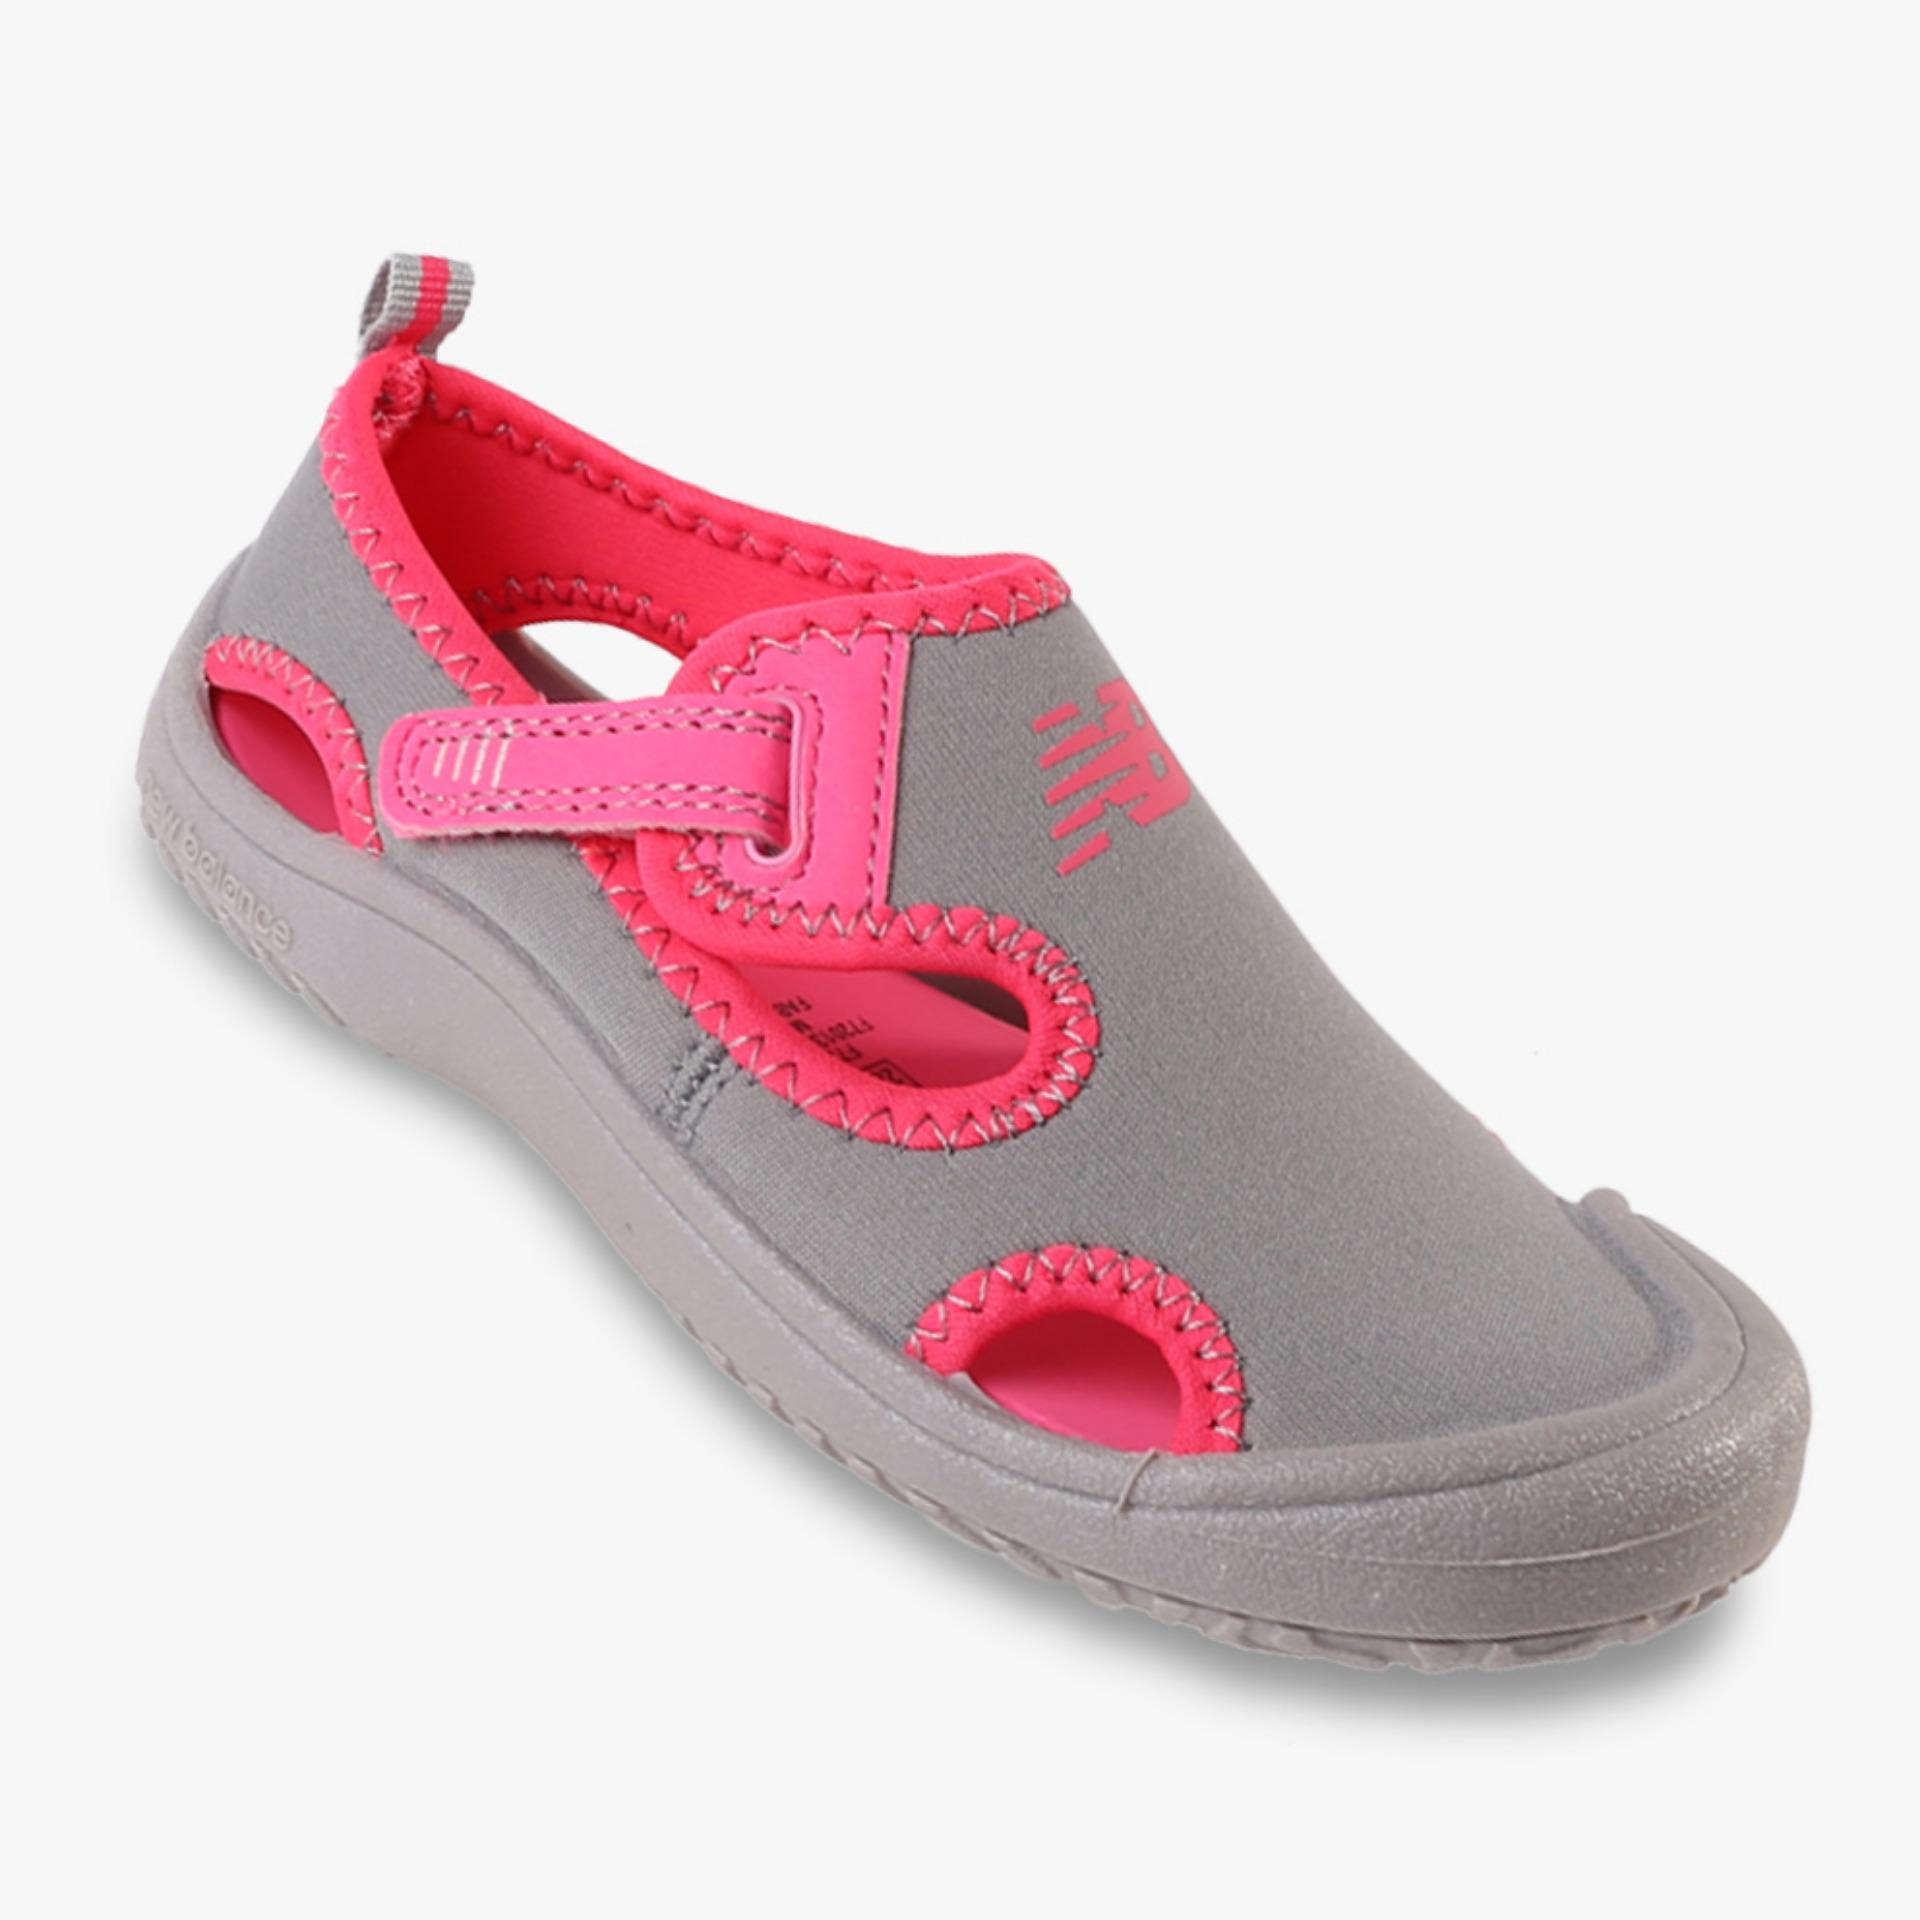 New Balance Cruiser Girl's Sandals - Abu-abu